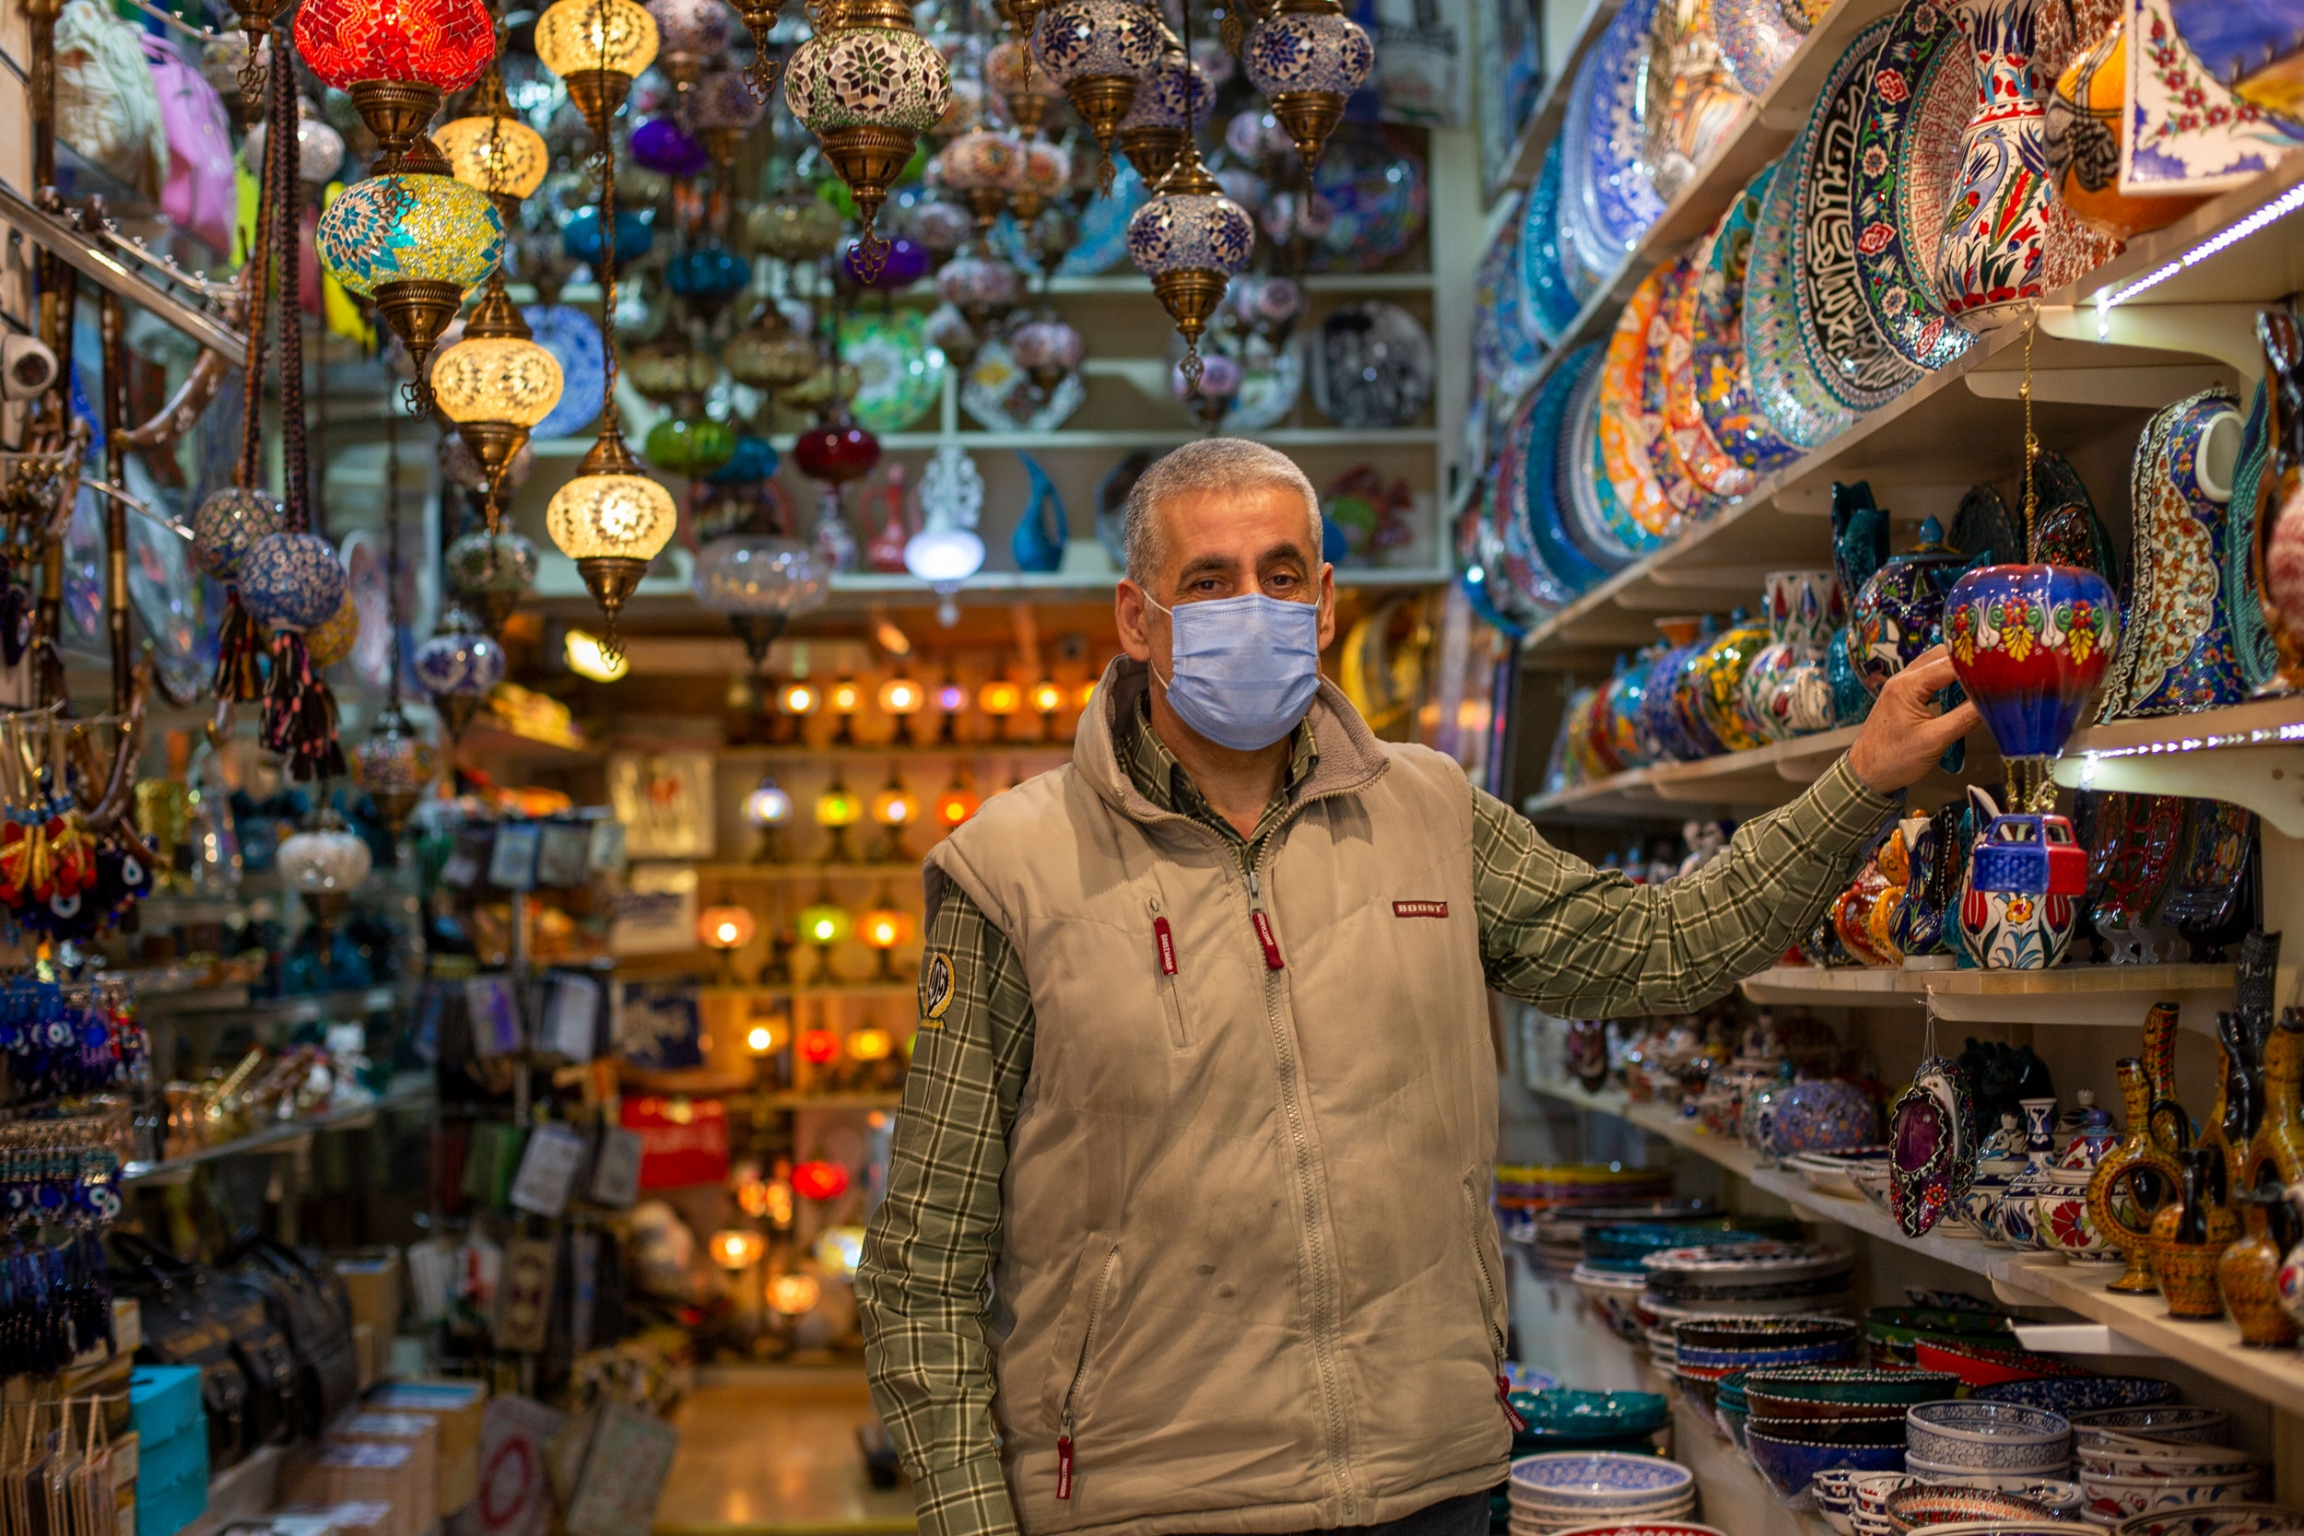 A man is shown wearing a face mask and khaki vest while standing in an aisle with colorful lamps.